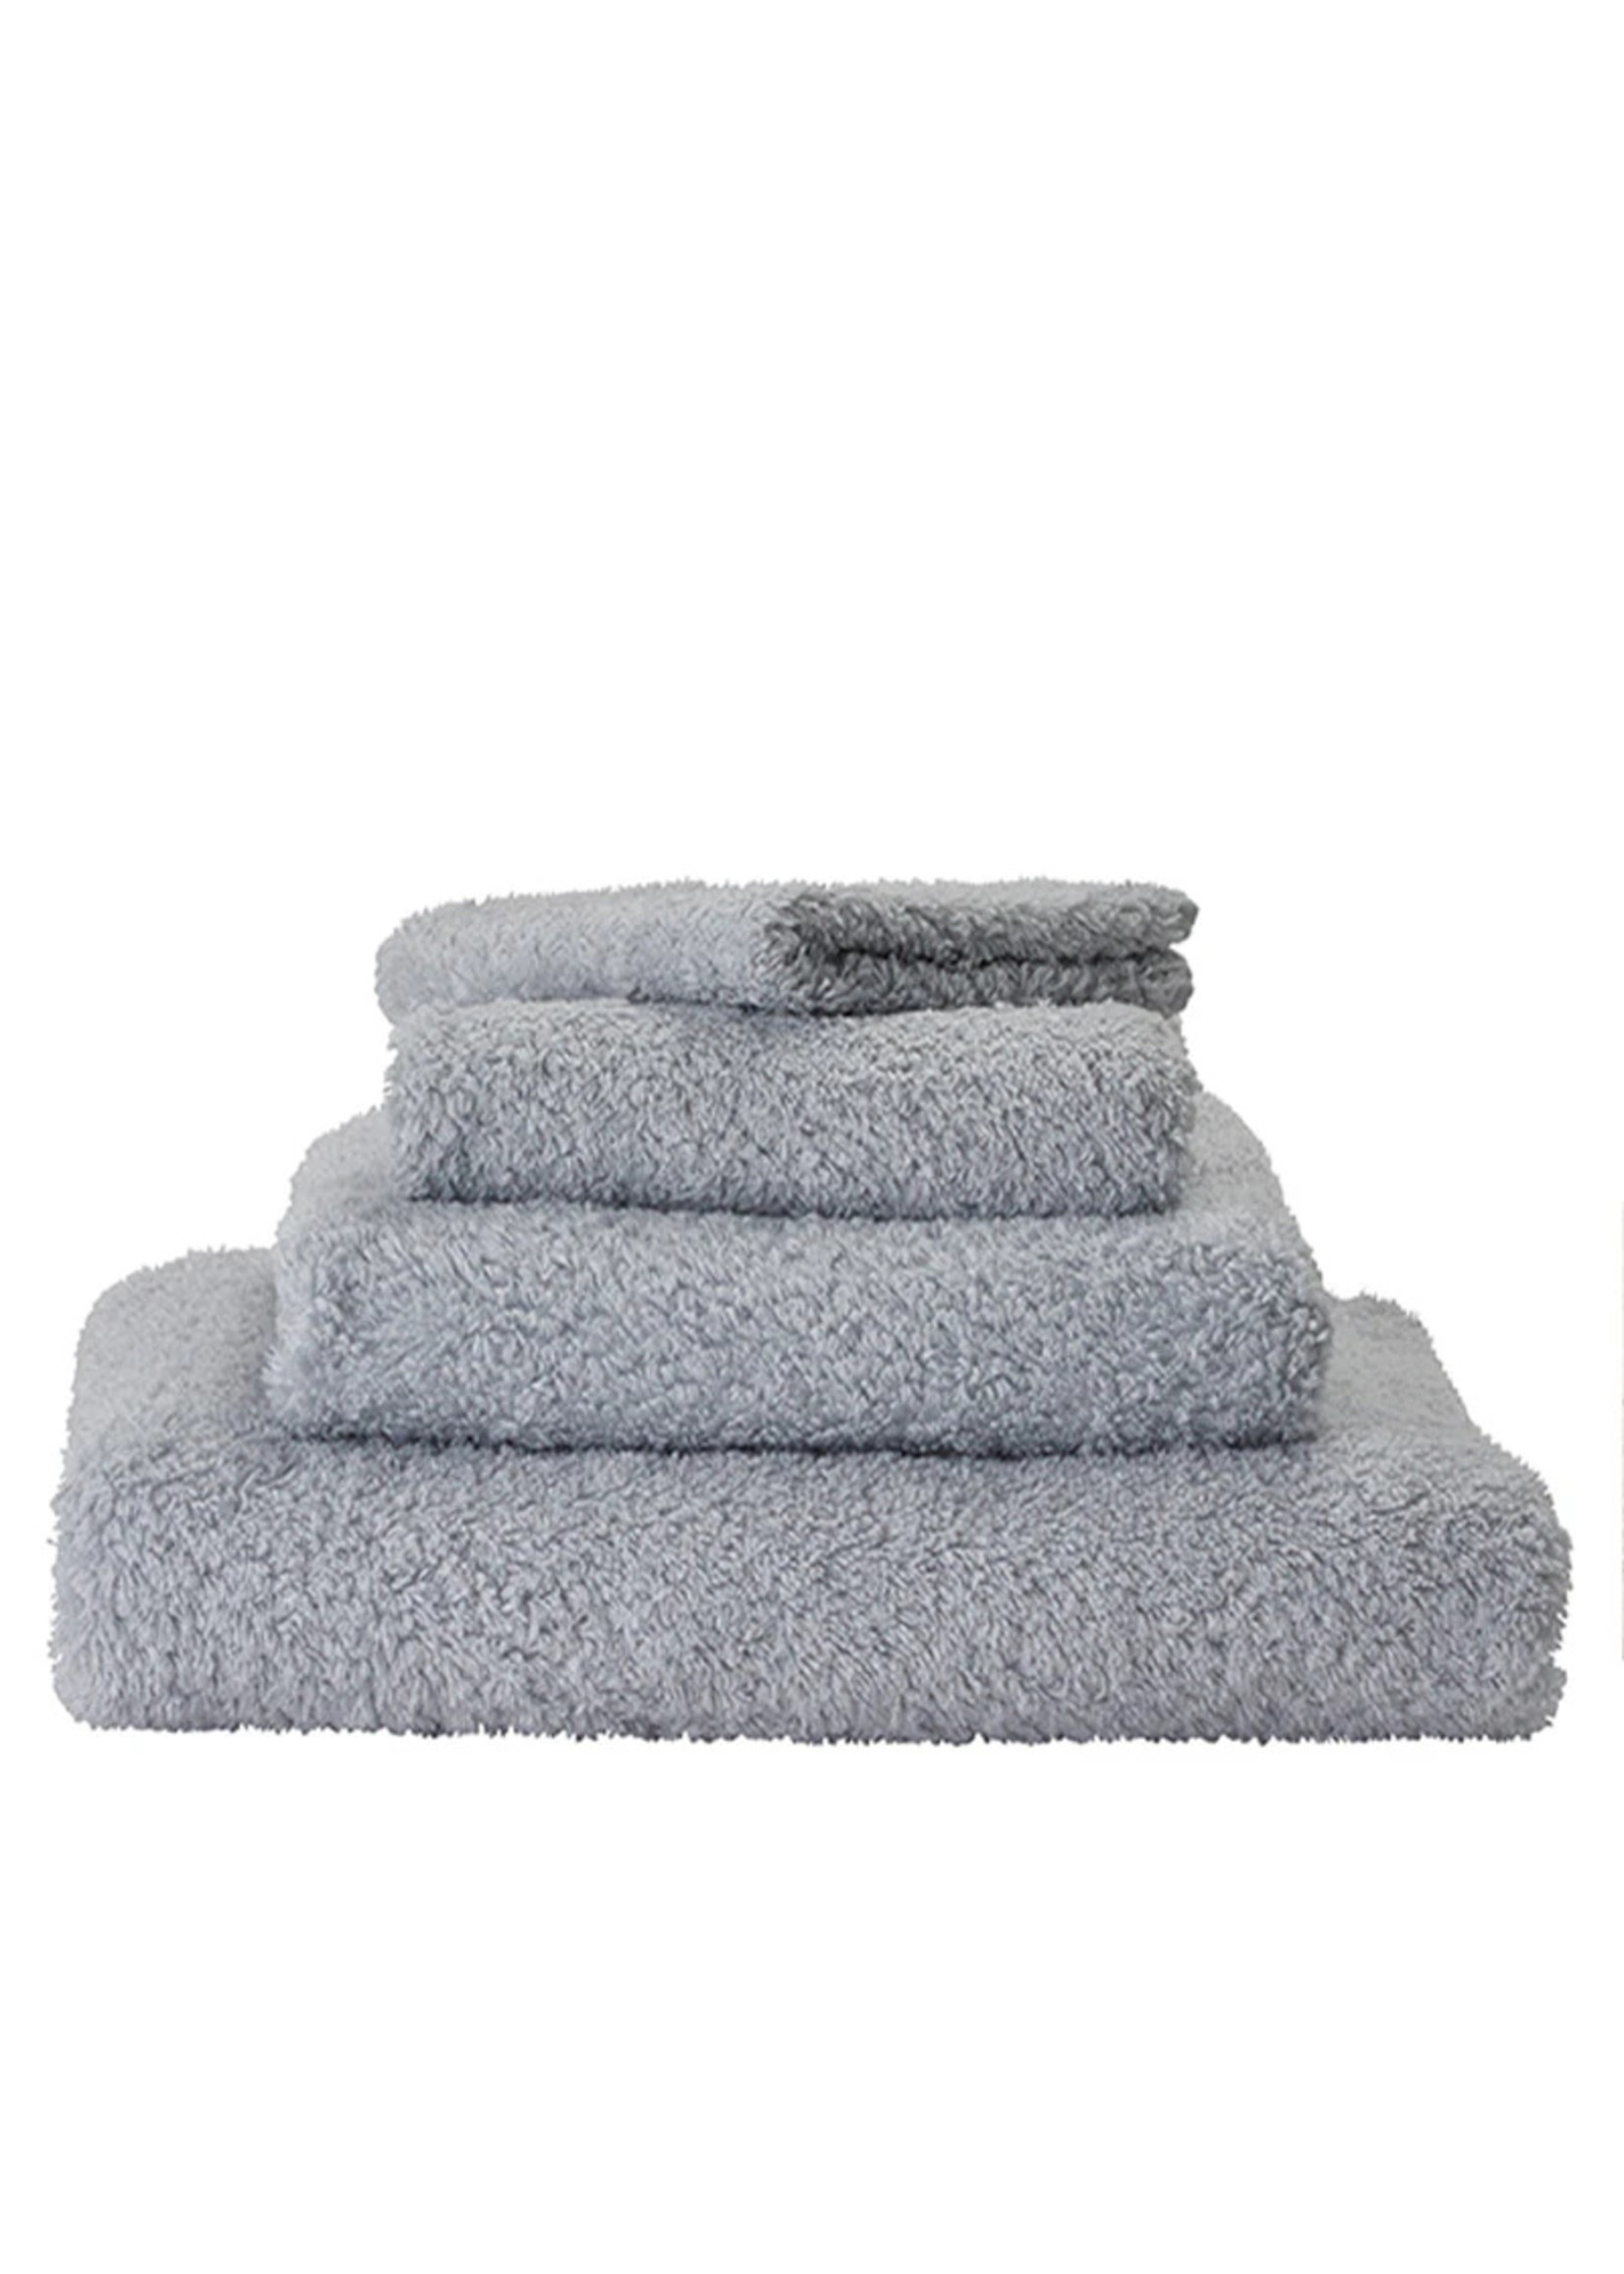 Abyss & Habidecor Super Pile Perle Towels